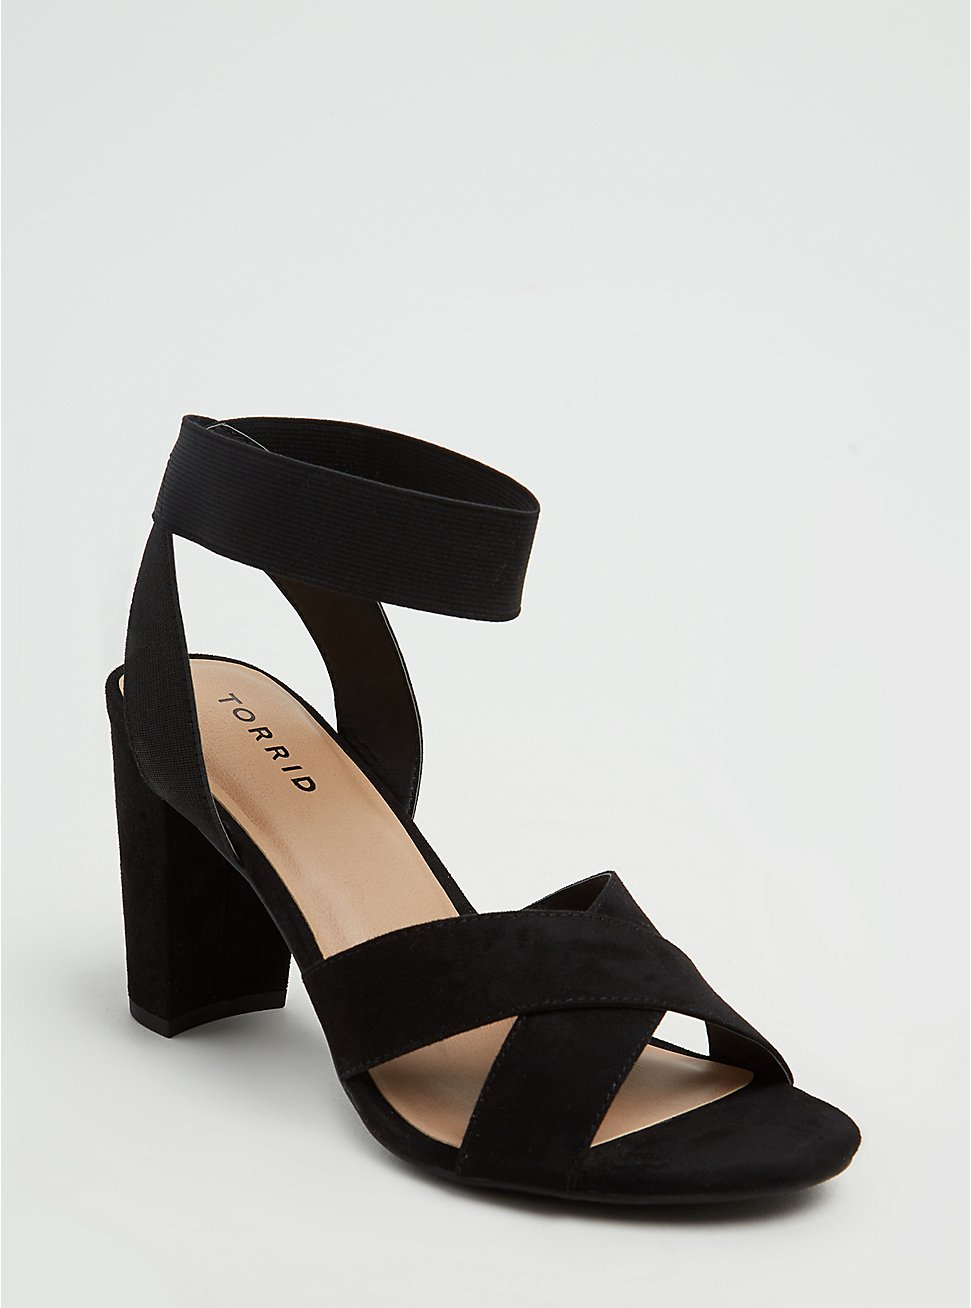 Black Faux Suede Crisscross Stretch Ankle Strap Tapered Heel (WW), BLACK, hi-res